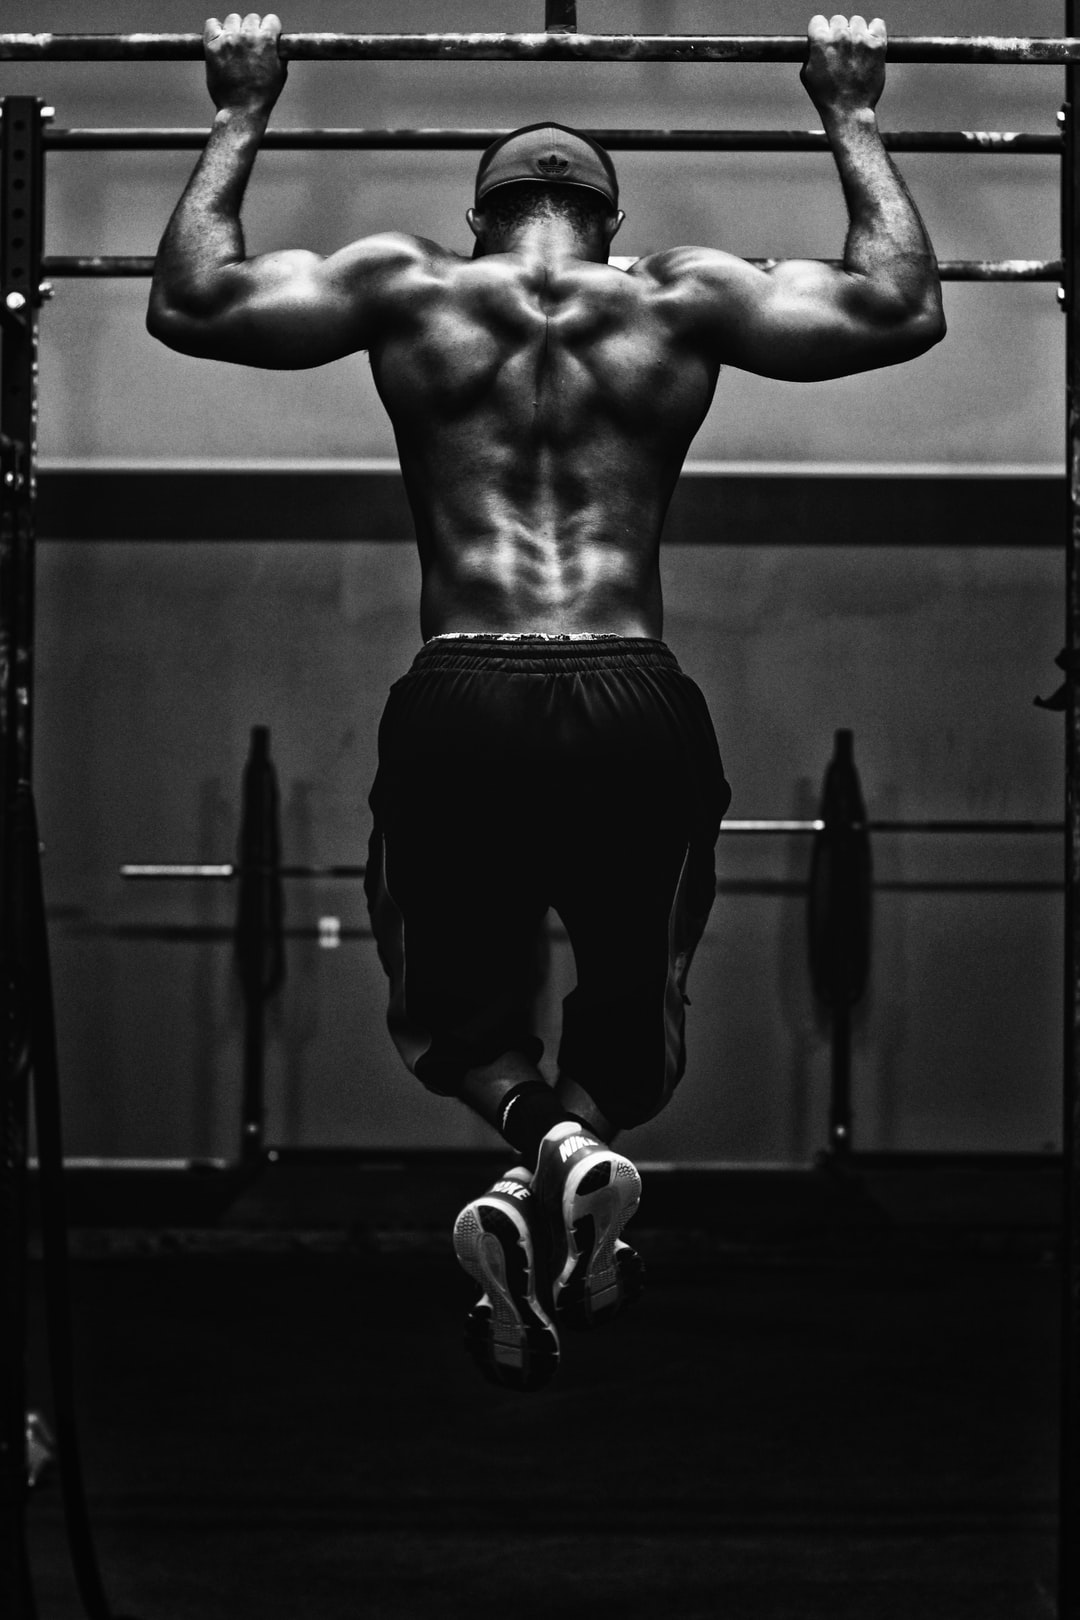 500 Bodybuilder Photos Hd Download Free Images On Unsplash